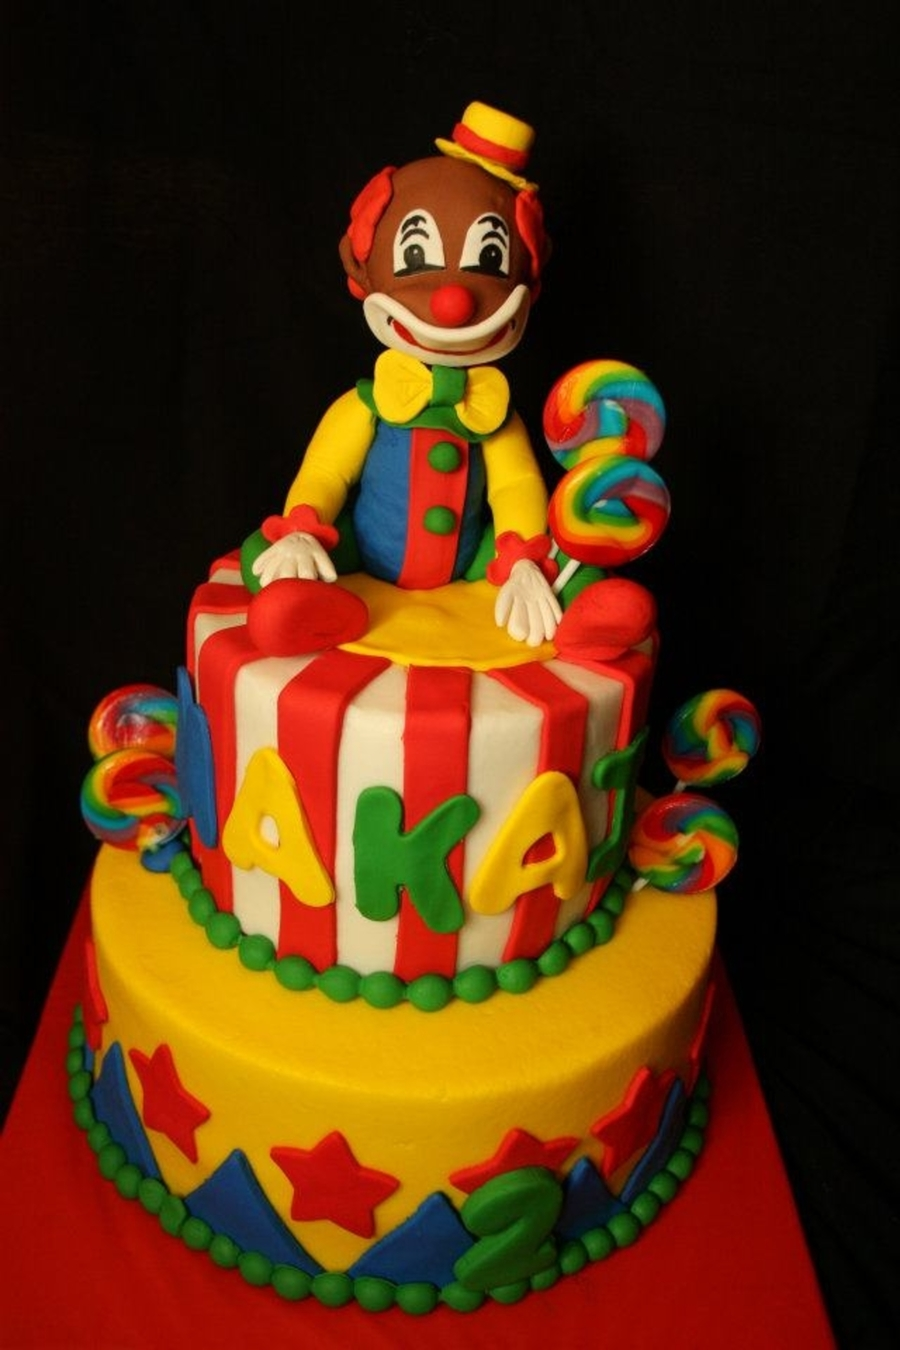 The Circus on Cake Central